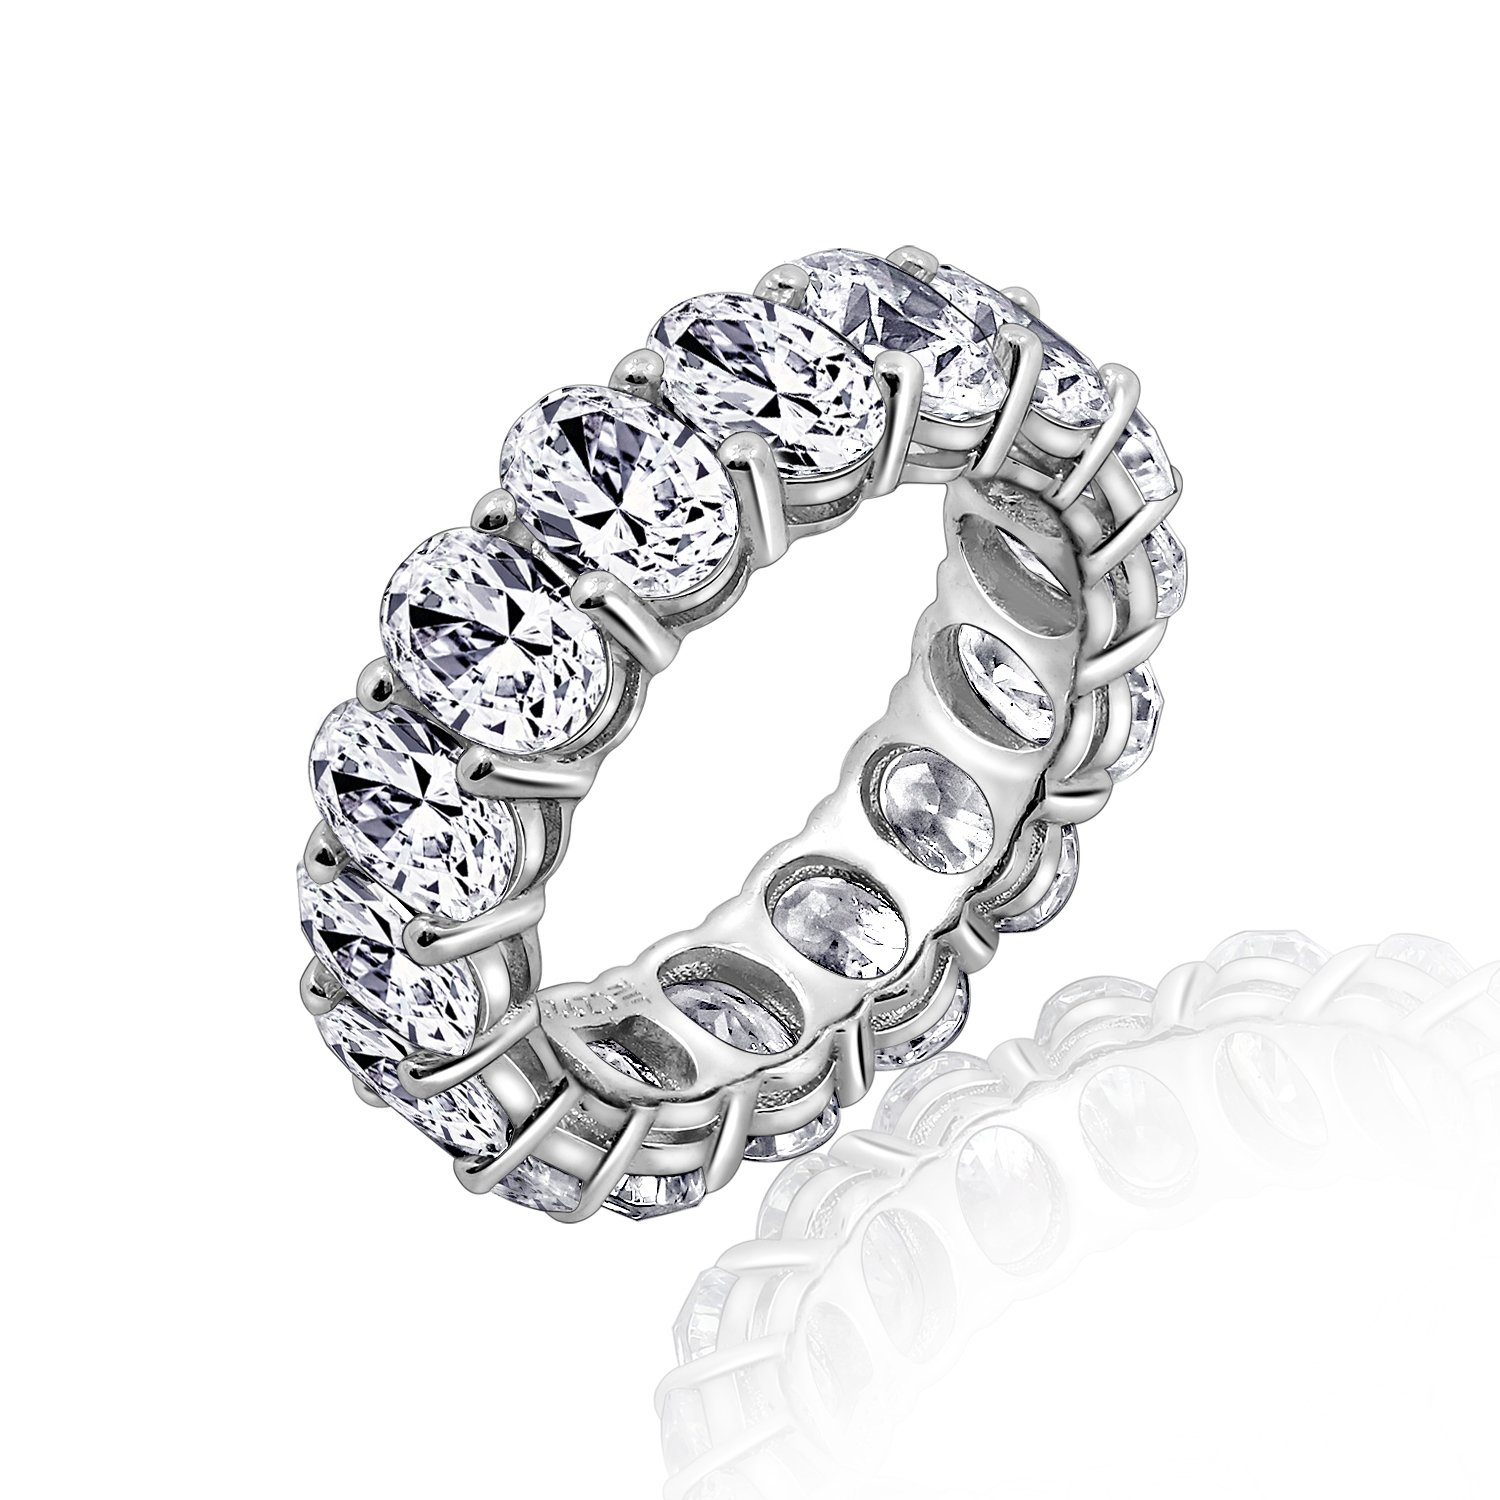 Diamonbliss Platinum Clad Cubic Zirconia 100-Facet Oval Eternity Band Ring, Size 8